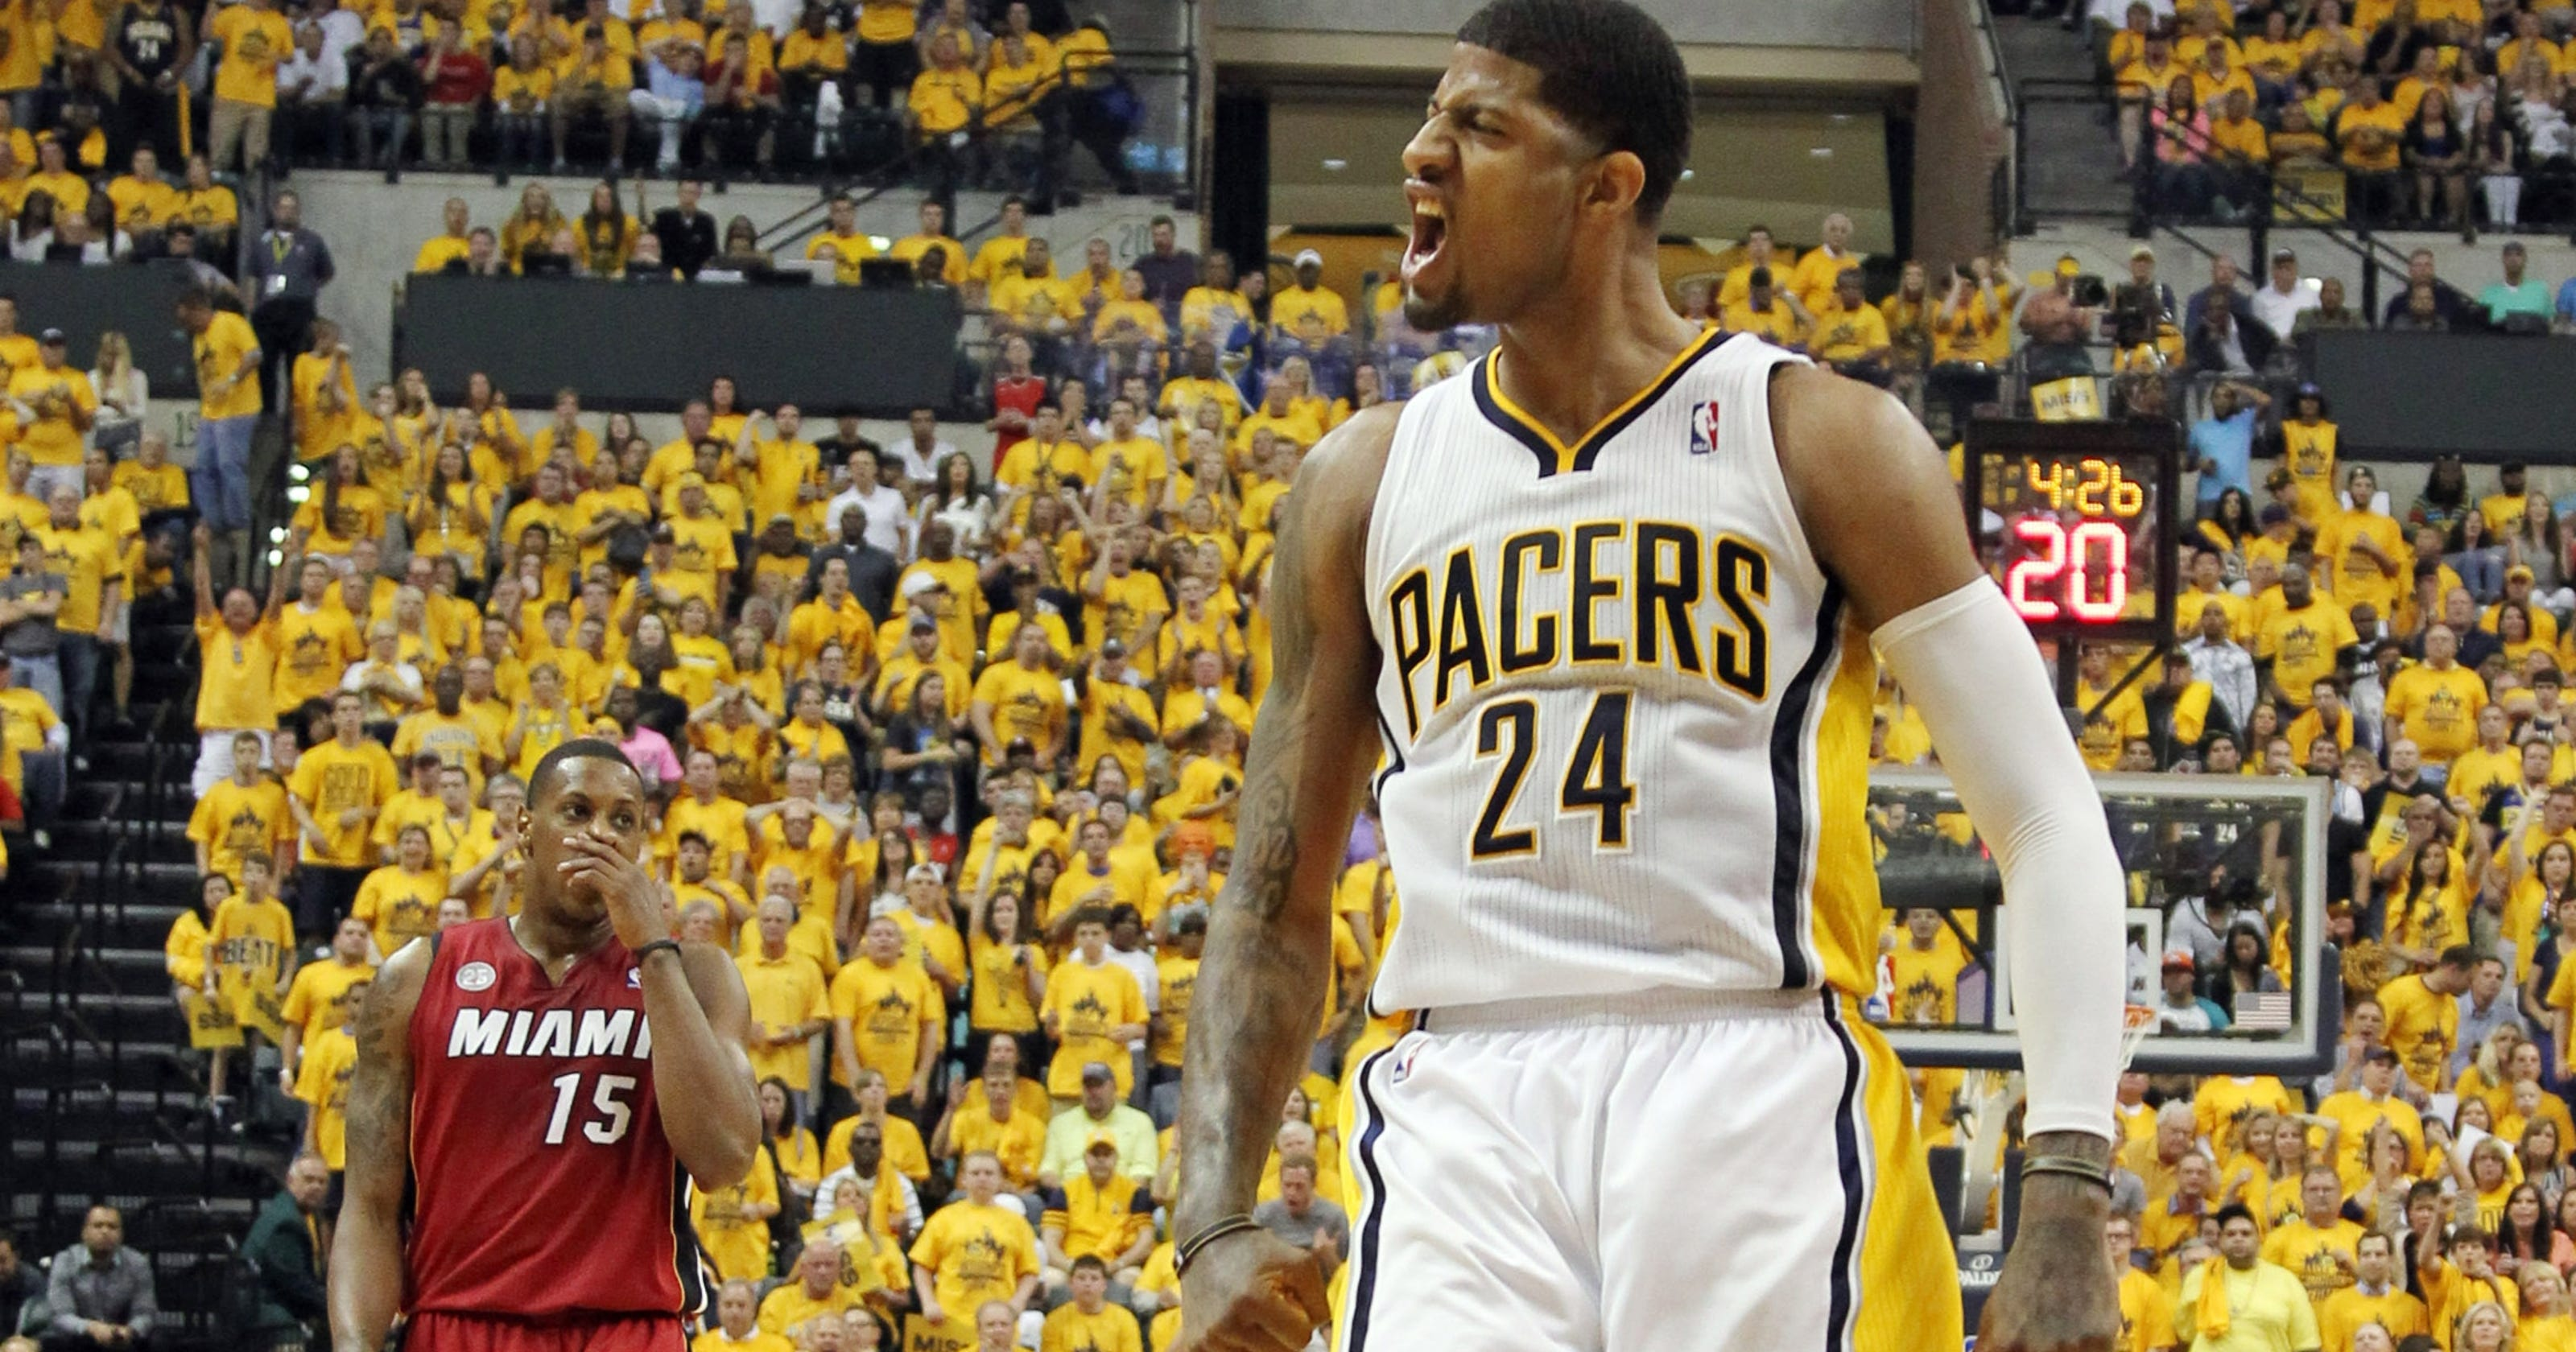 Paul George gets MVP hype as Pacers-Heat hits Game 7